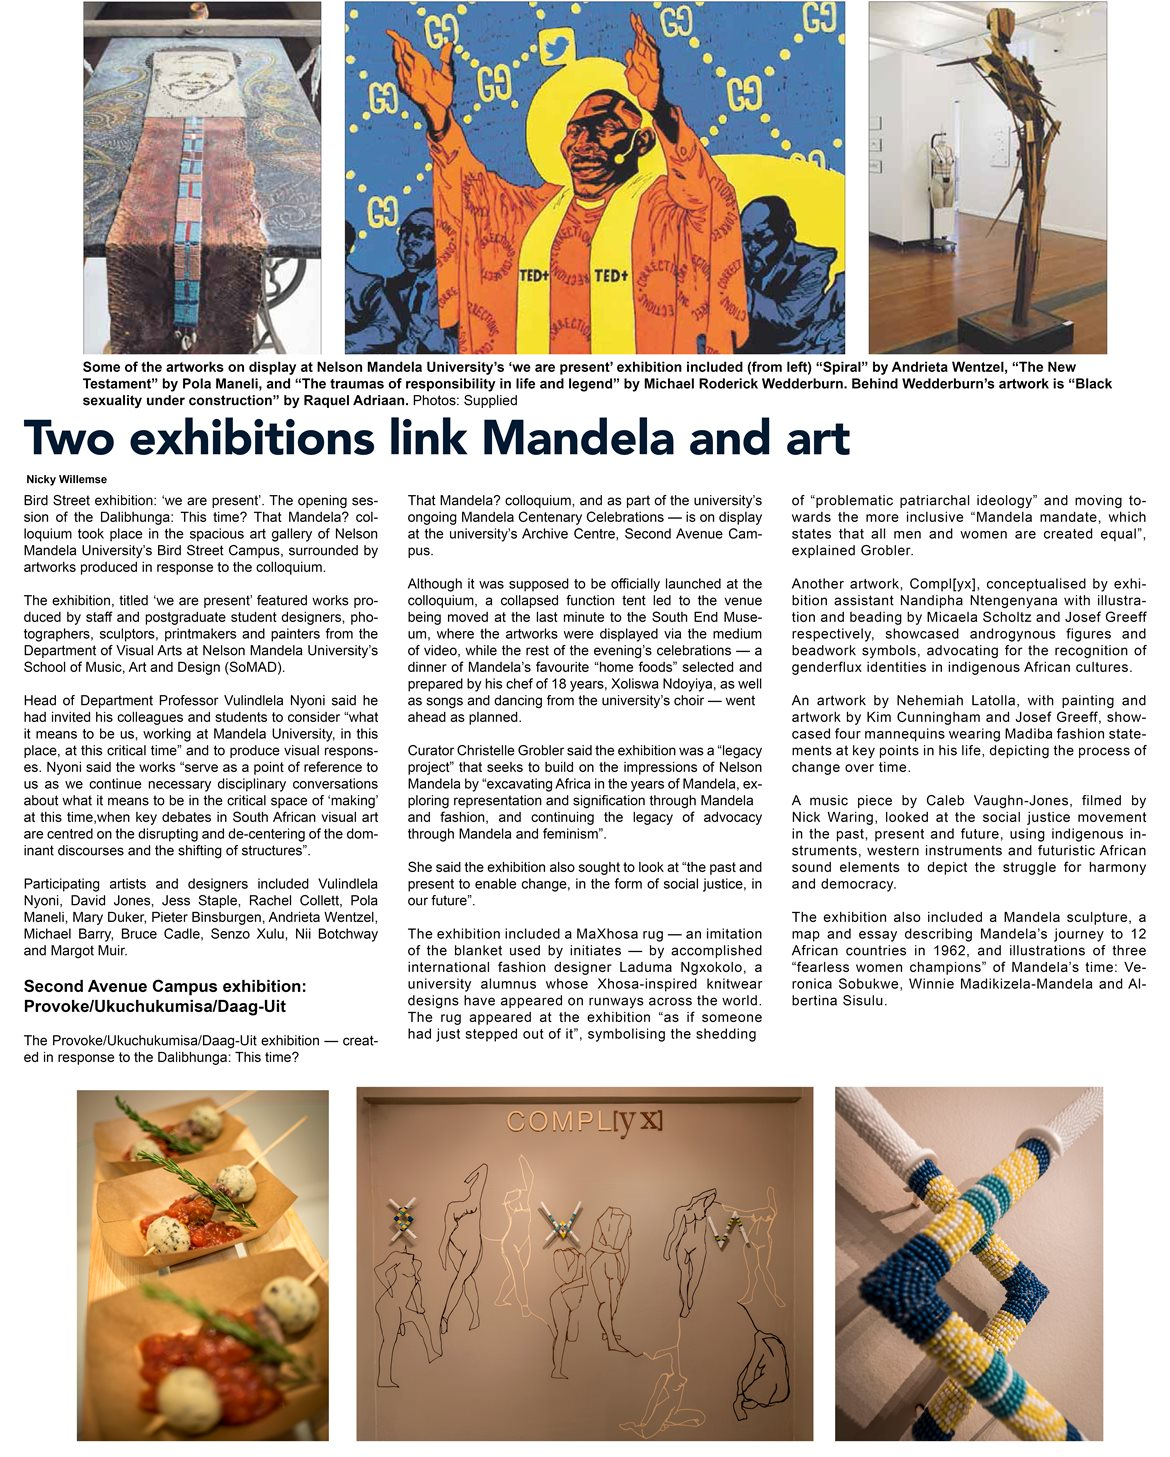 Two exhibitions link Mandela and art